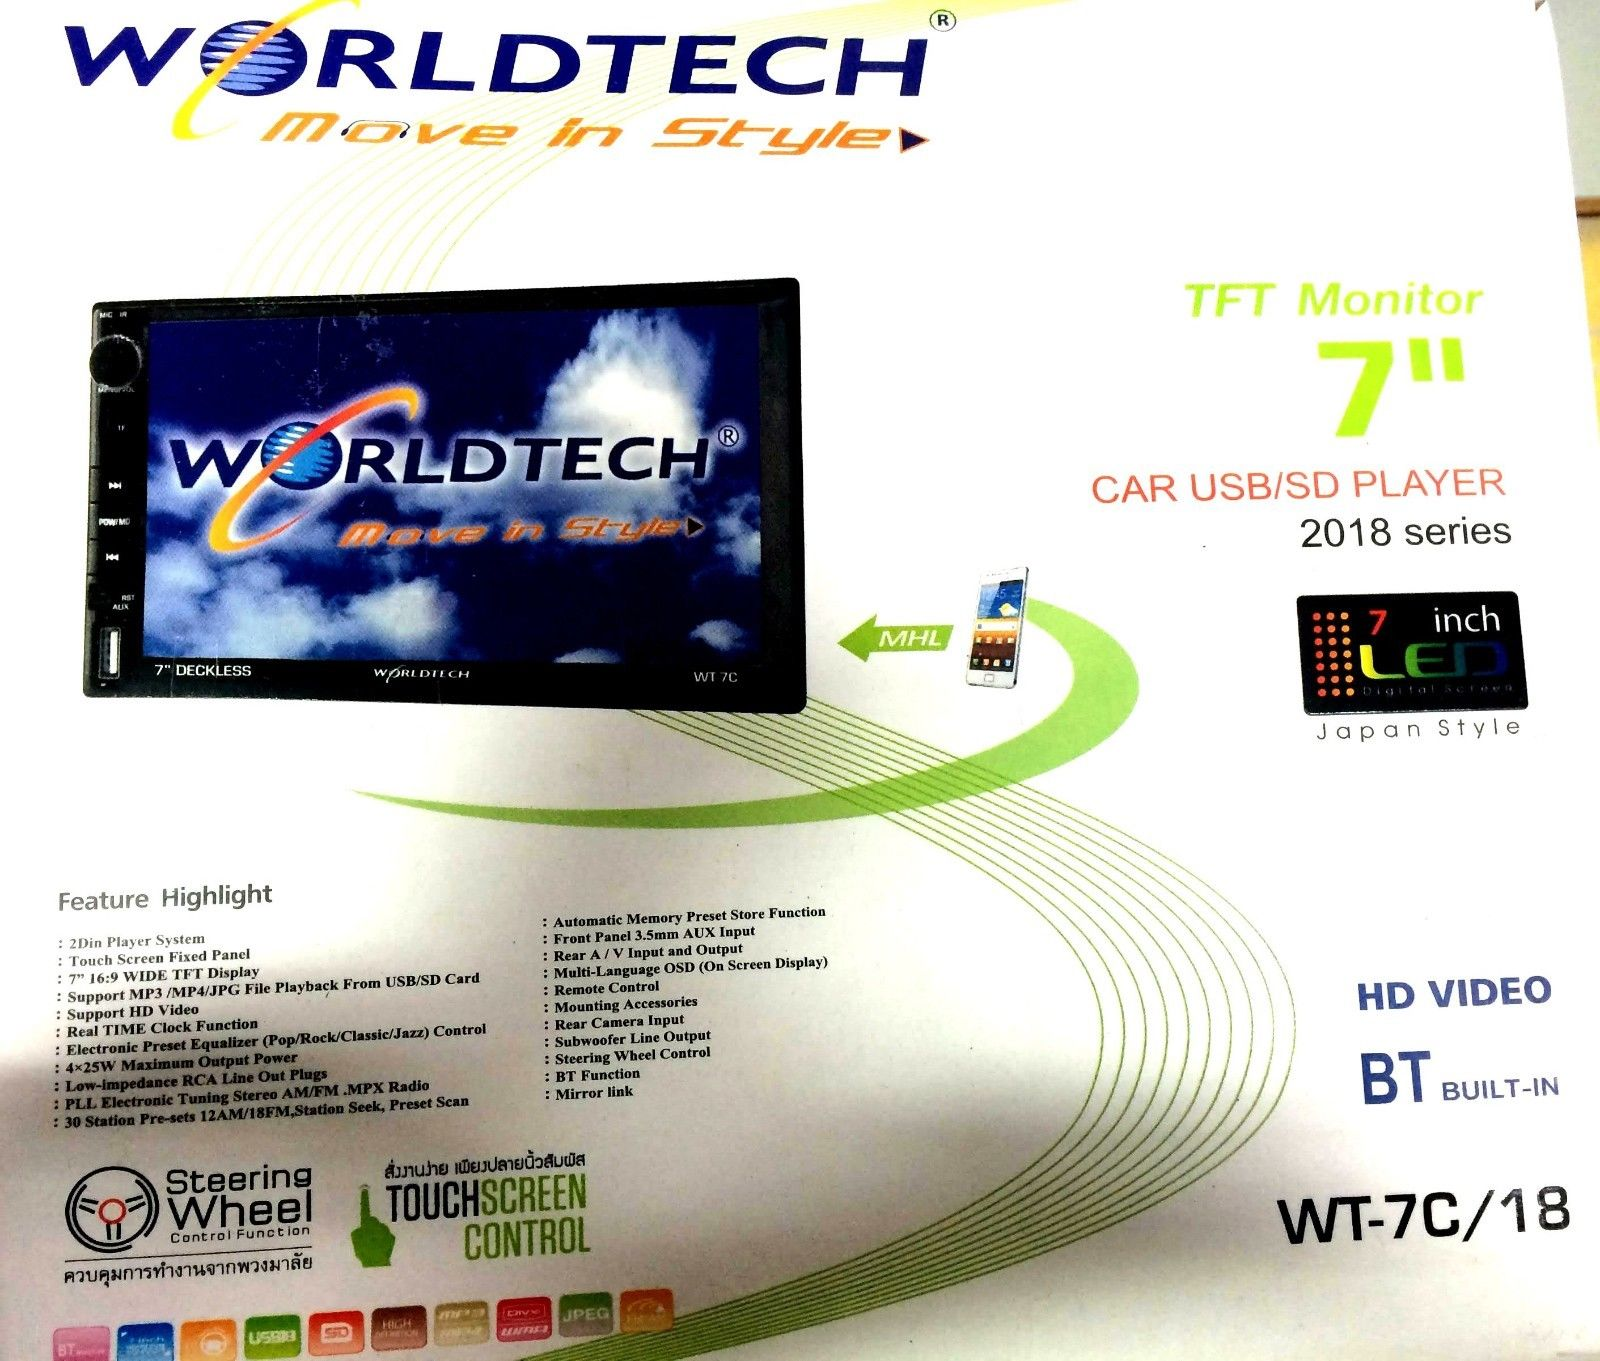 Worldtech 7 Inch Double Din Car Touch Screen Stereo Wt 7c 18 Tft Circuit Diagram With Bluetooth